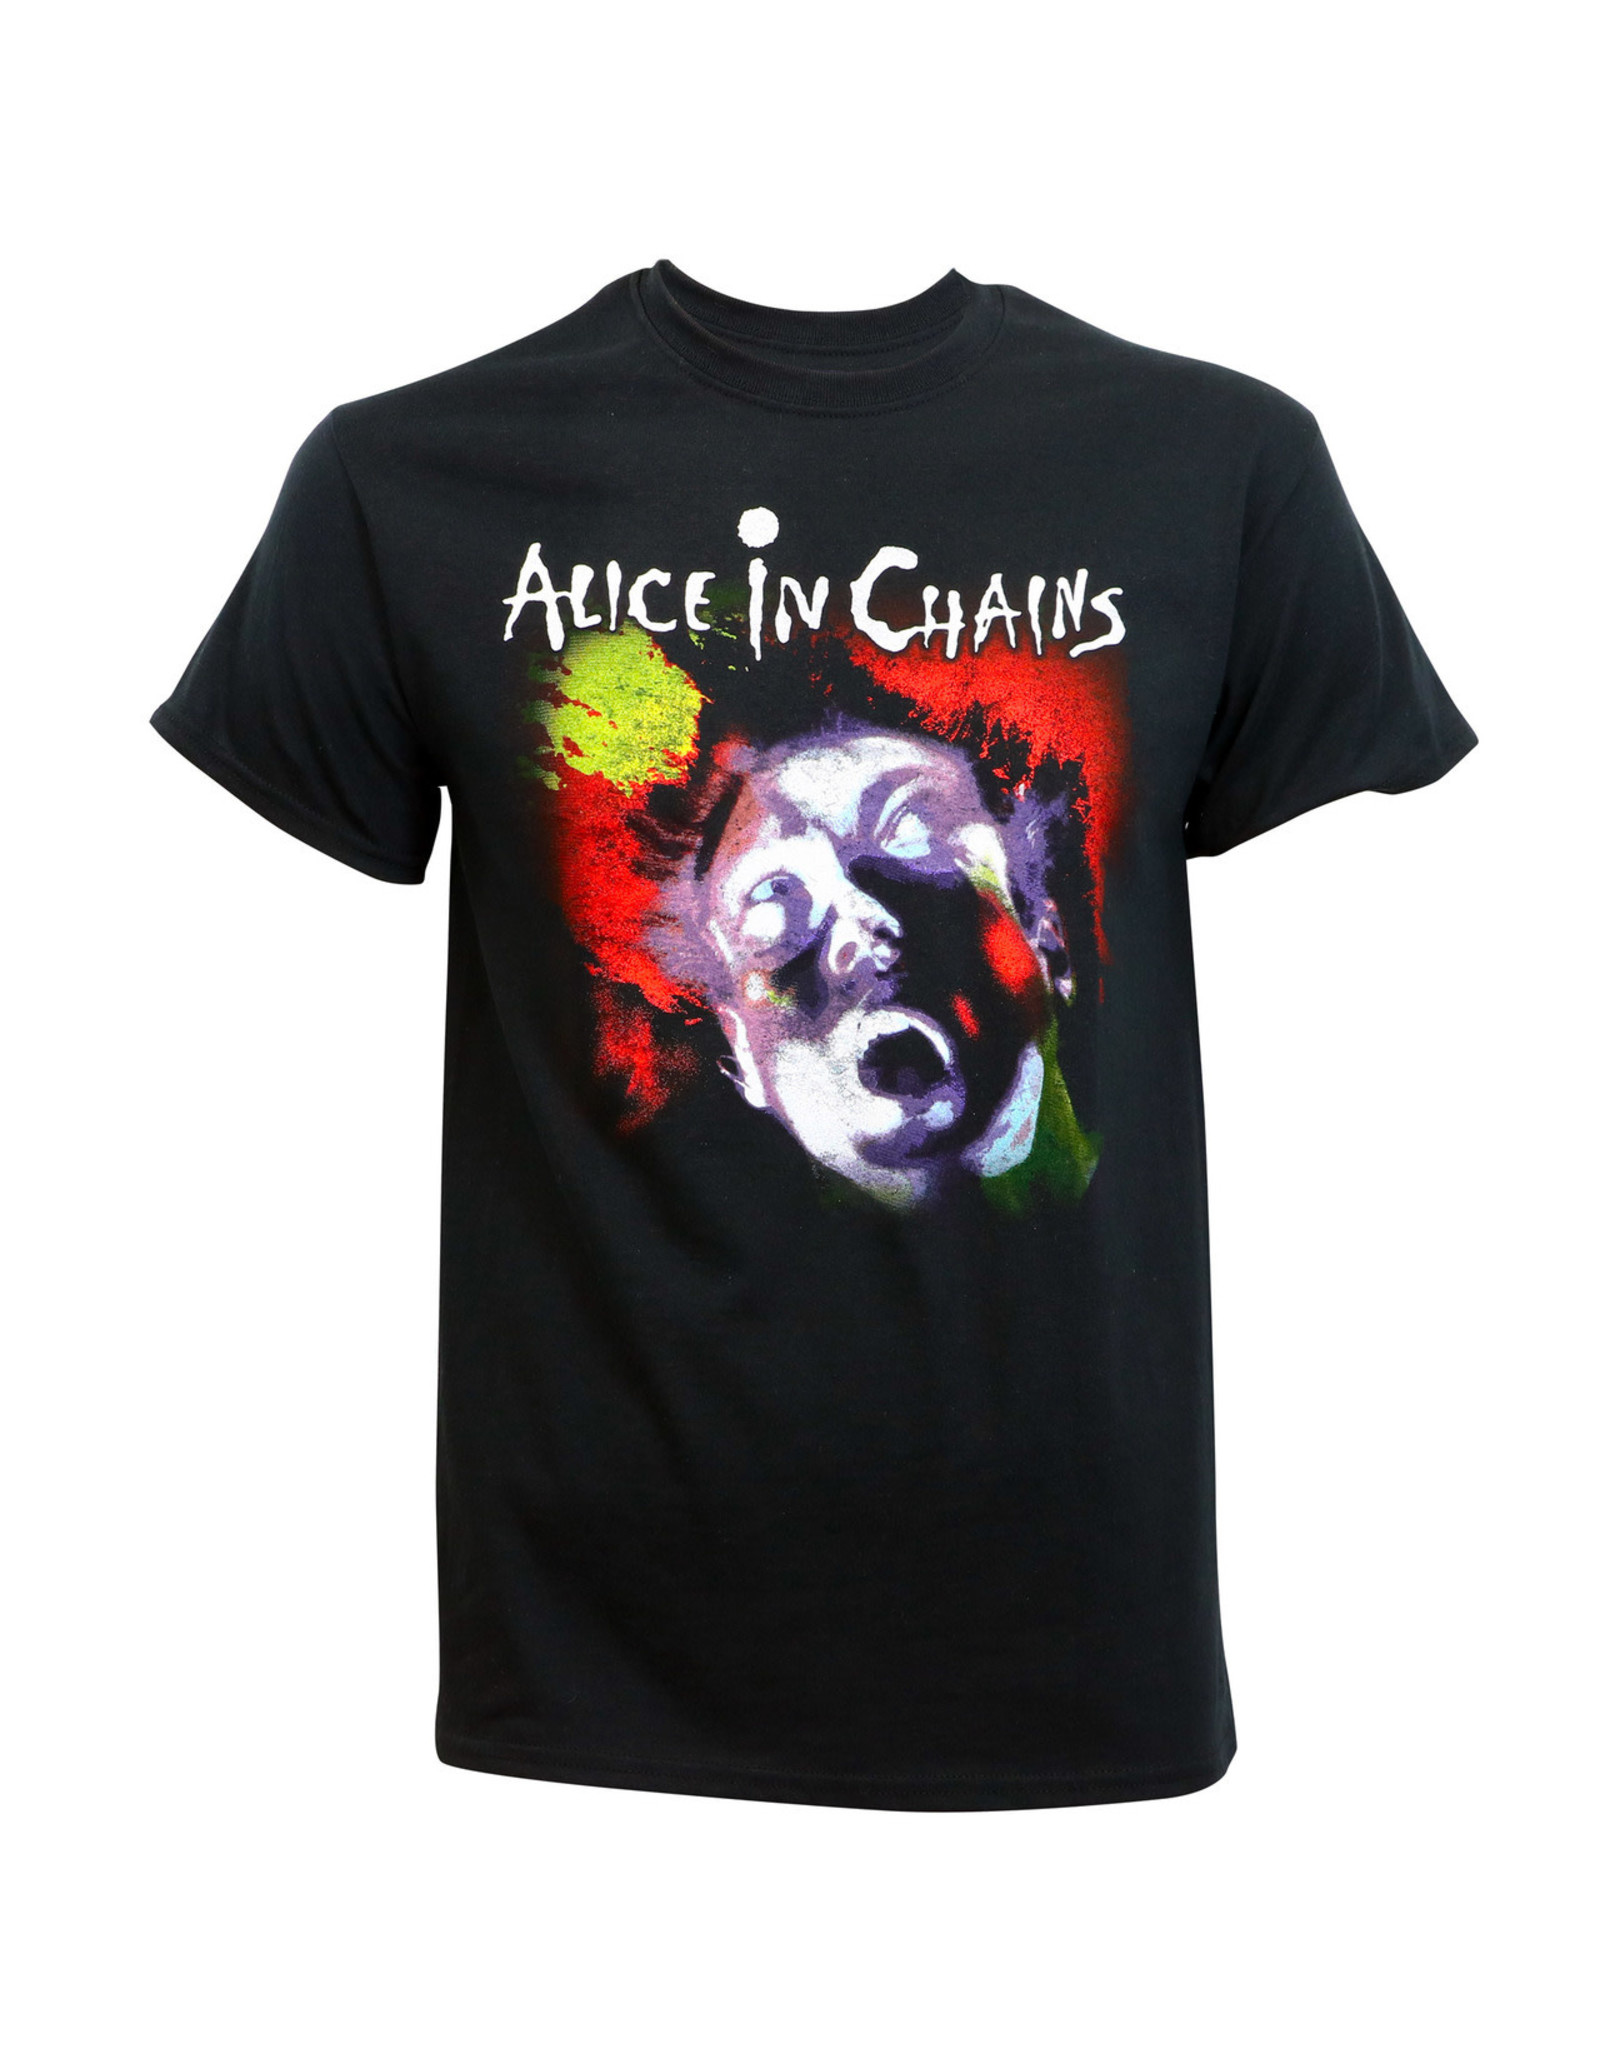 "Alice in Chains ""Facebreaker"" T-Shirt"